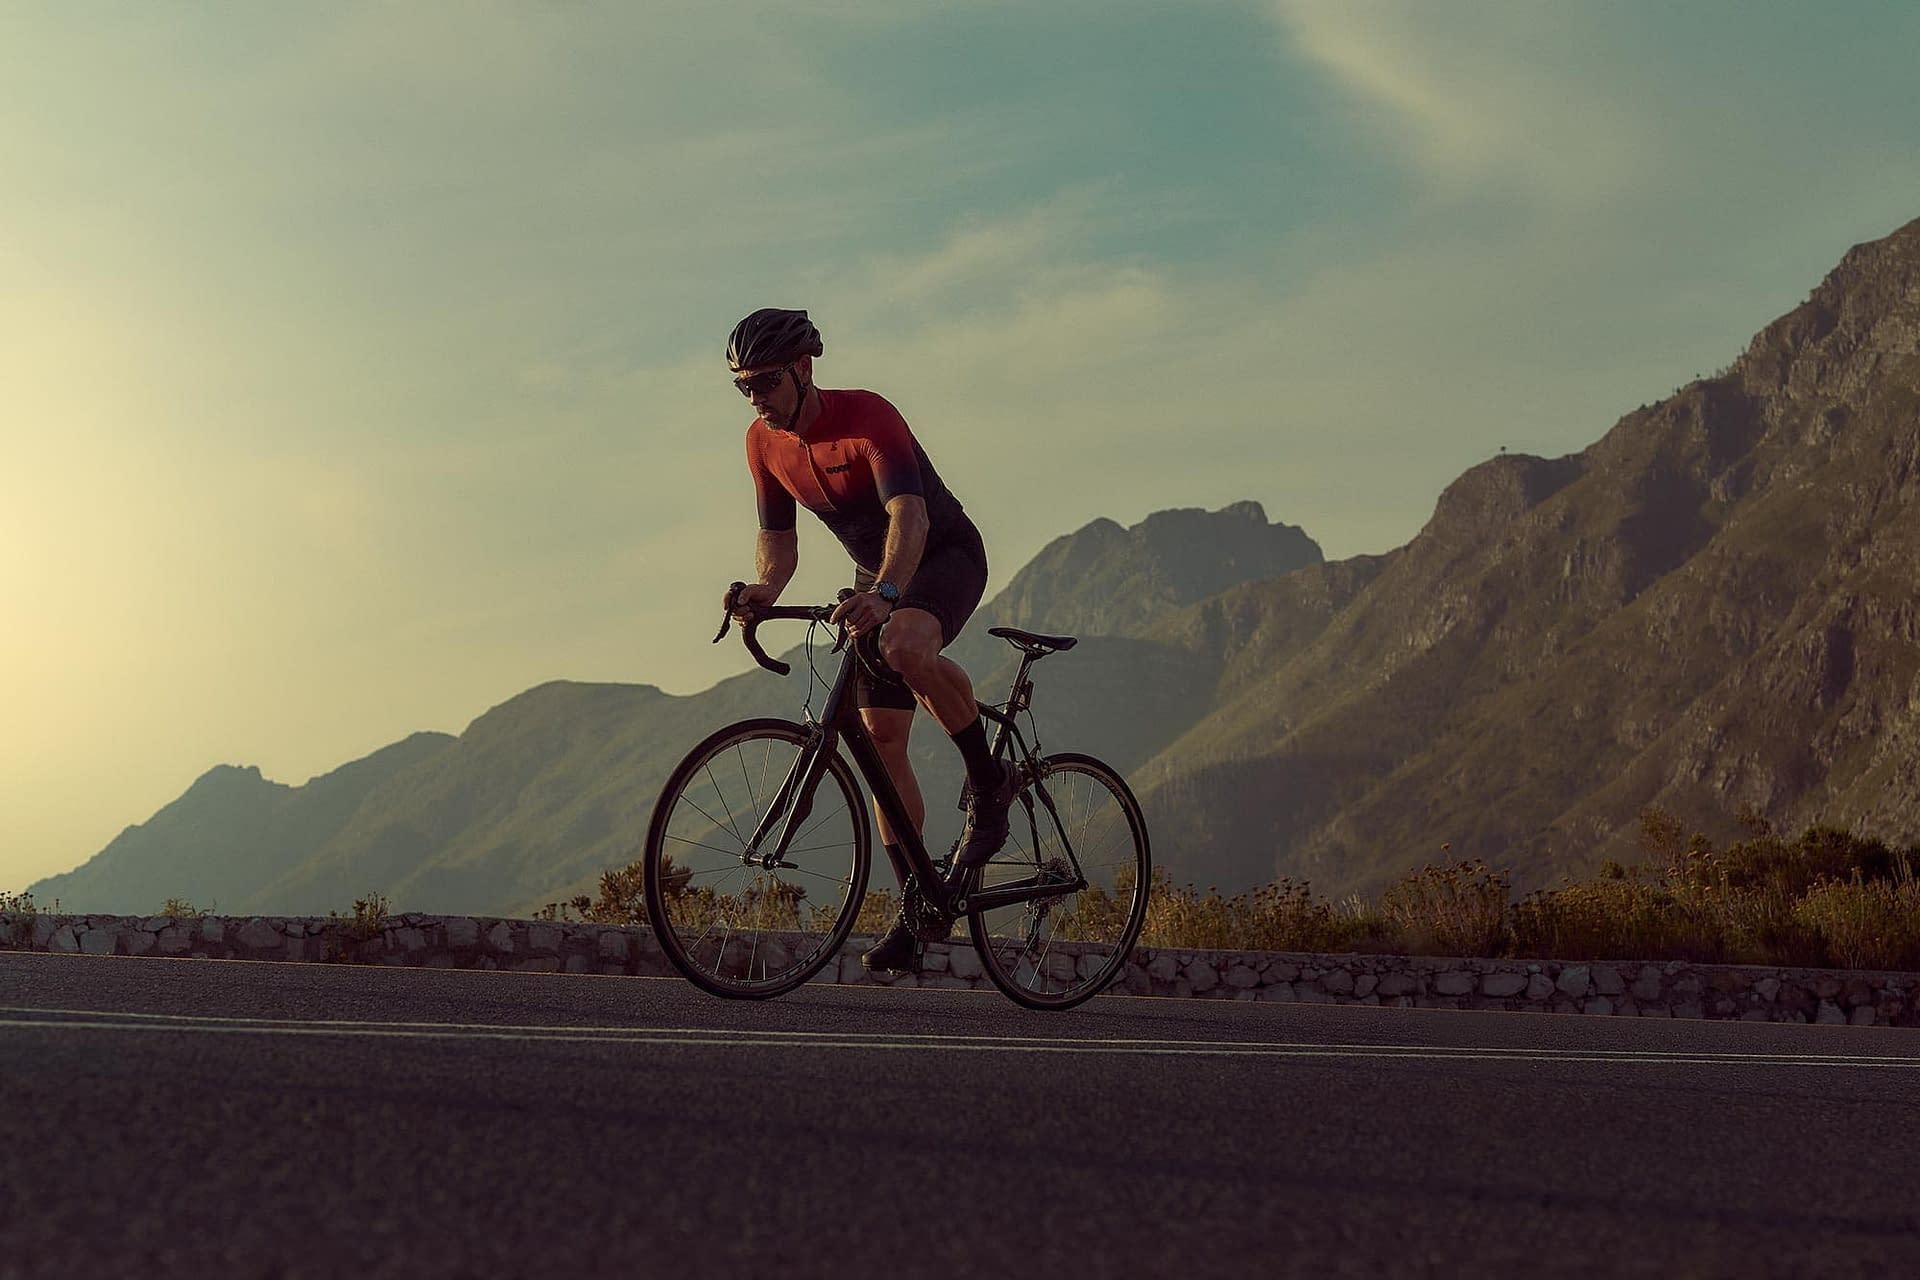 active sportswear brand tissot photographed in cape town late evening with cyclist using only natural lighting